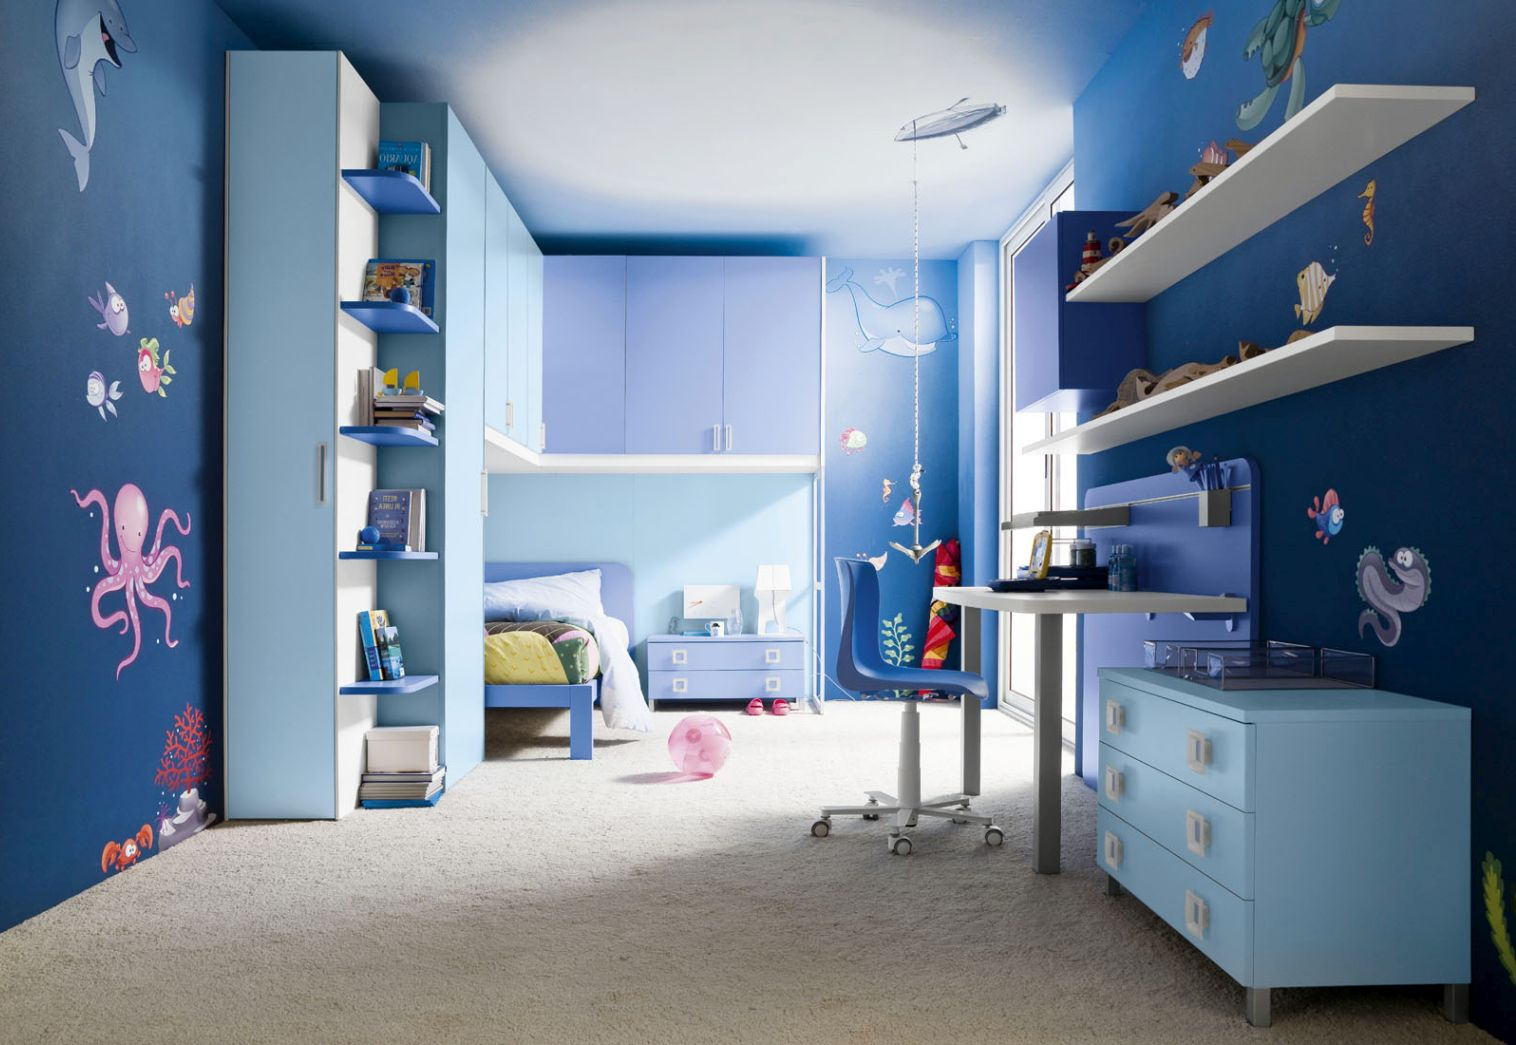 Amazing ocean blue room decor ideas for teenage boys - Ideas for room decoration ...